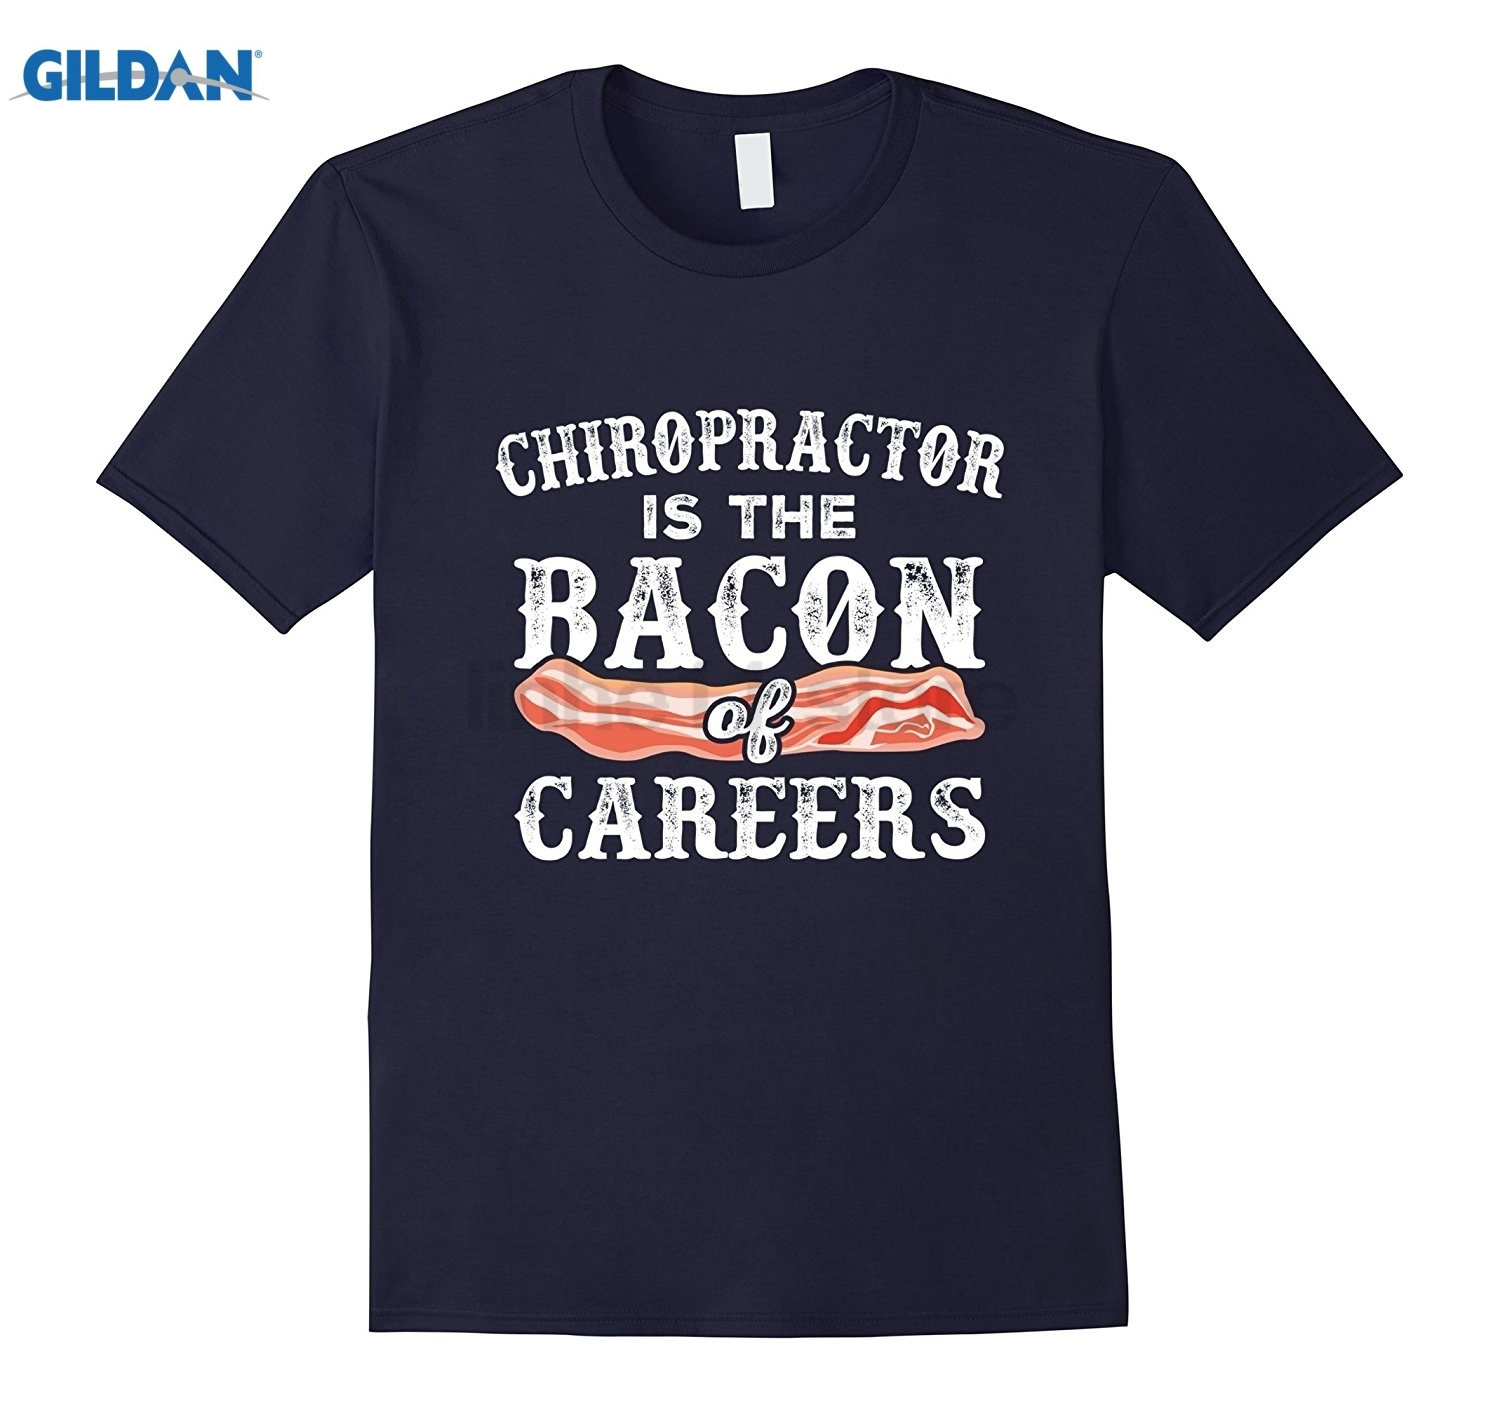 GILDAN Chiropractor Is The Bacon Of Careers Funny Spine Doc T-Shirt Womens T-shirt ...